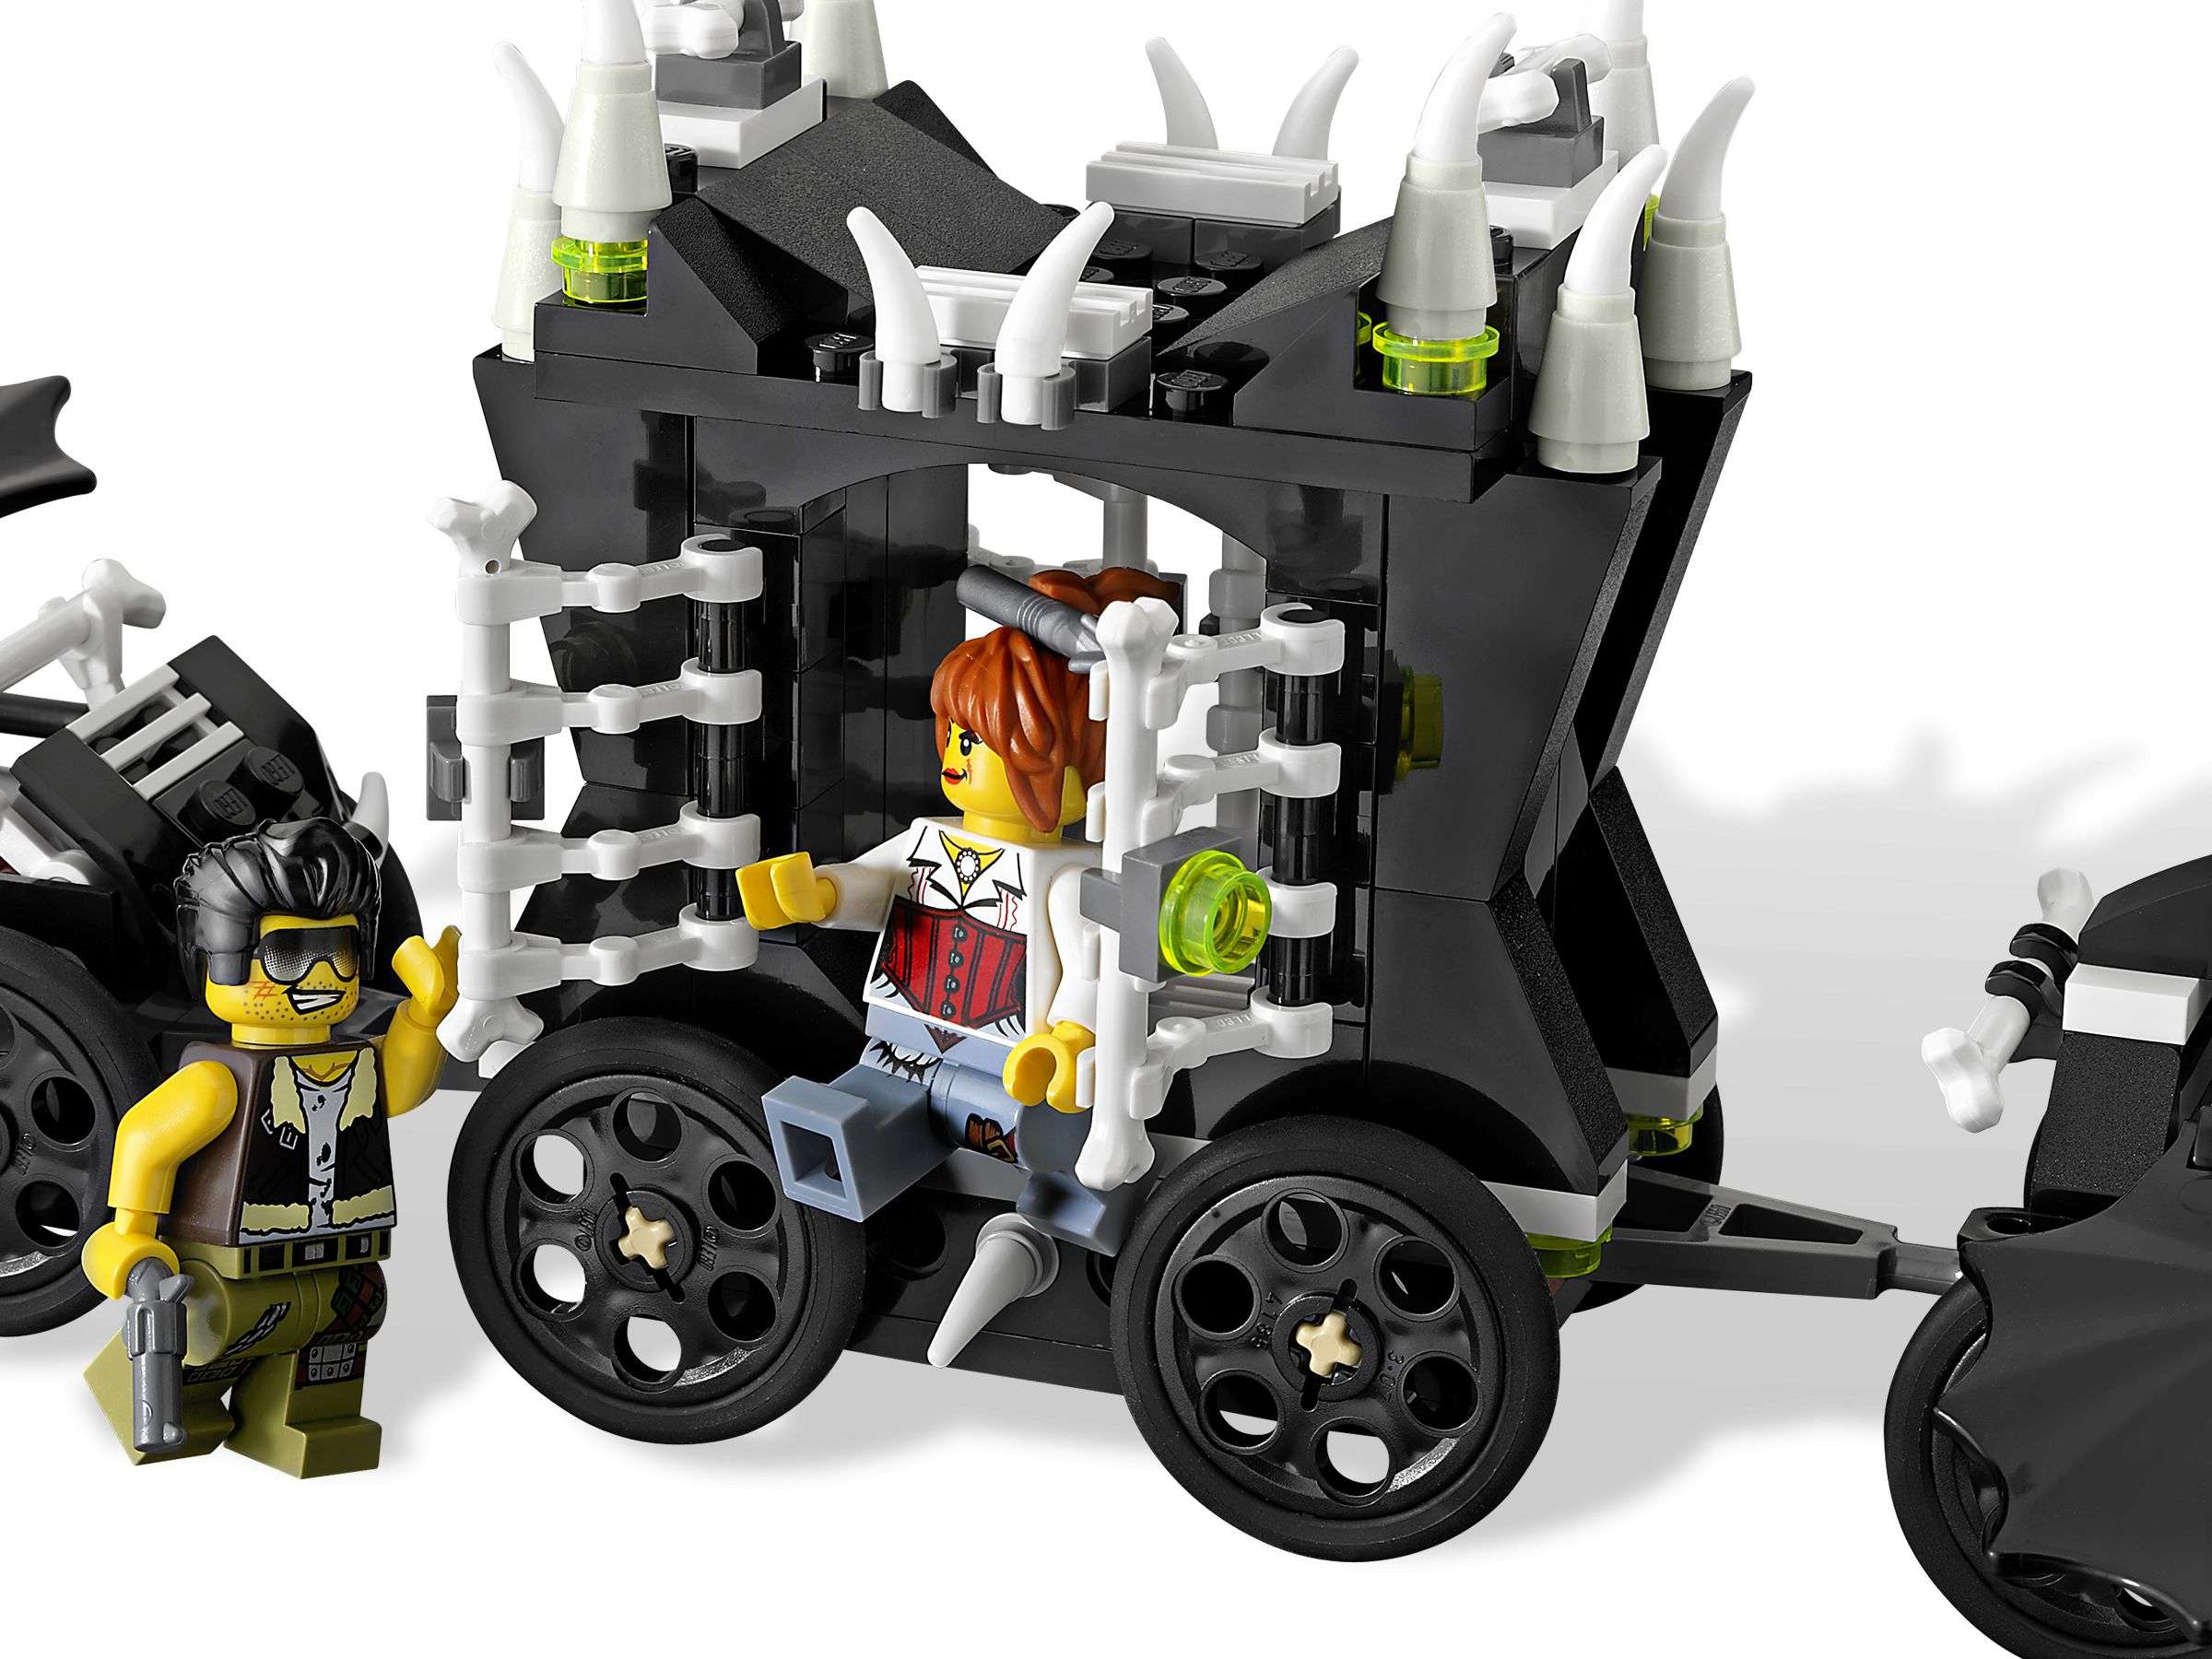 LEGO Monster Fighters 9467 The Ghost Train LEGO_9467_alt3.jpg